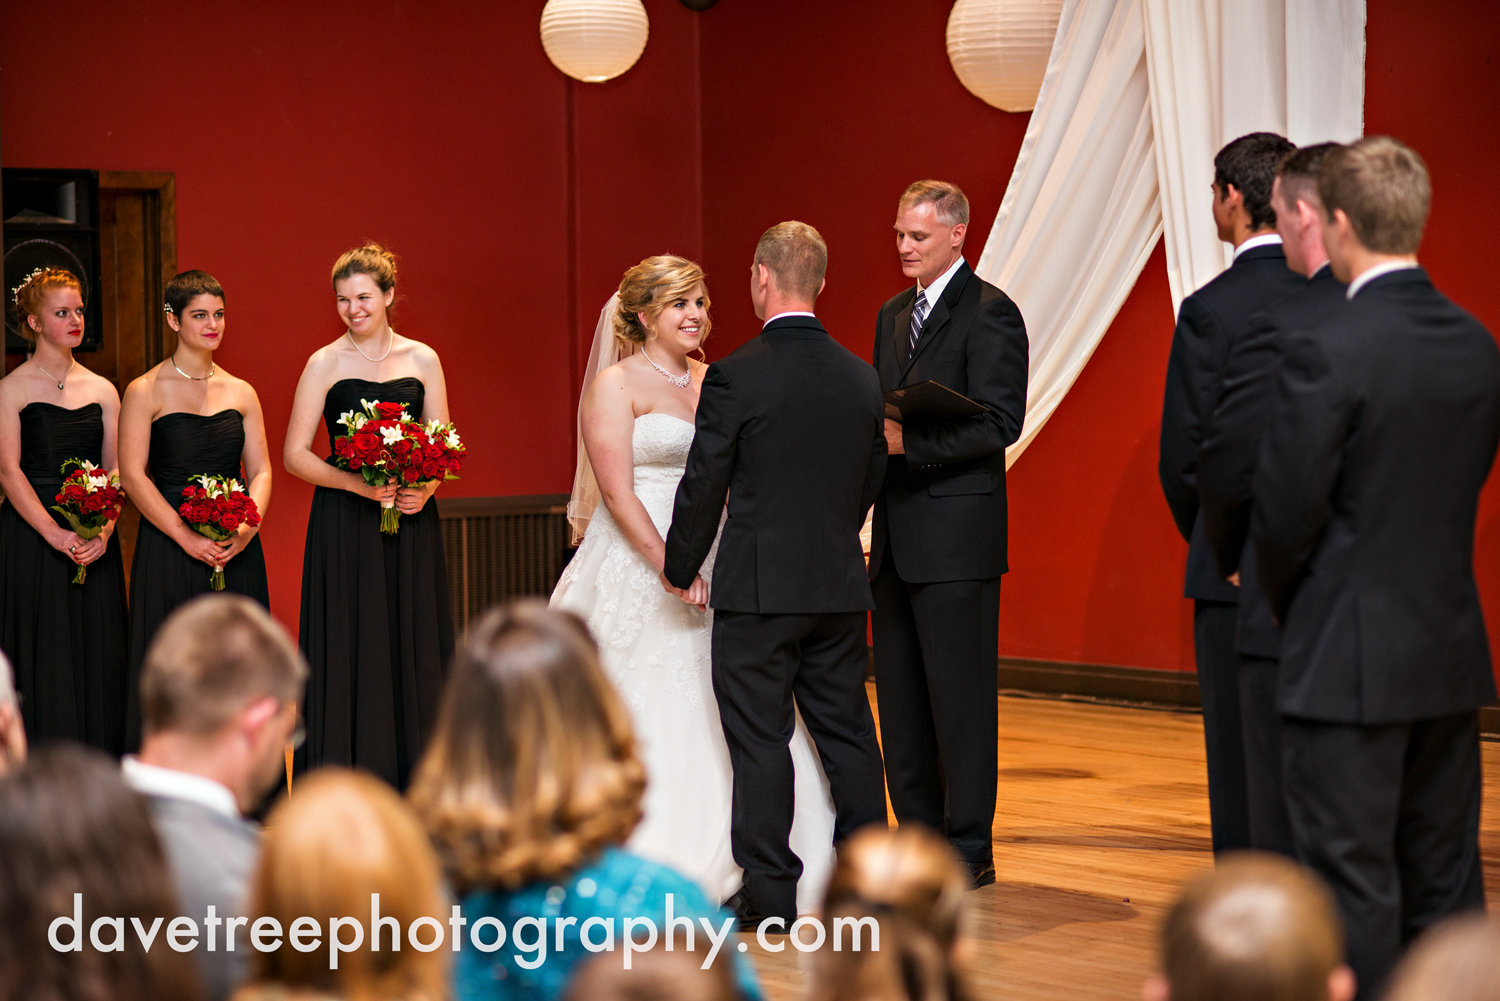 holland_wedding_photographer_41.jpg